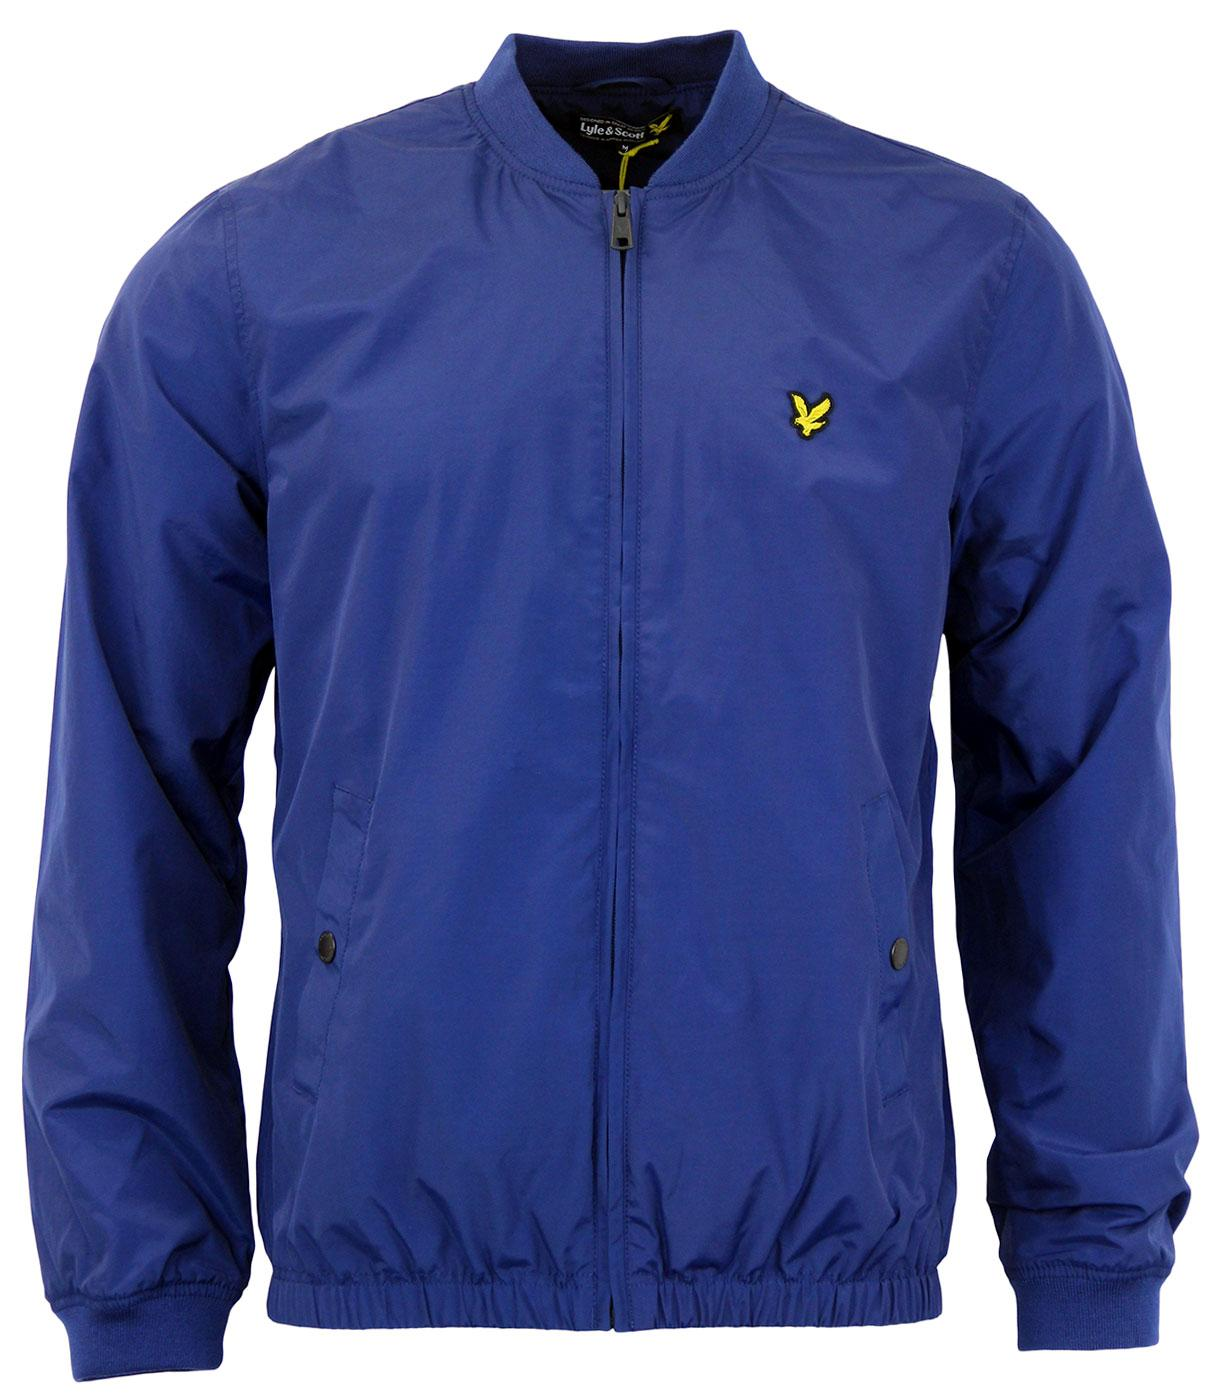 LYLE & SCOTT Retro Mod Lightweight Bomber Jacket